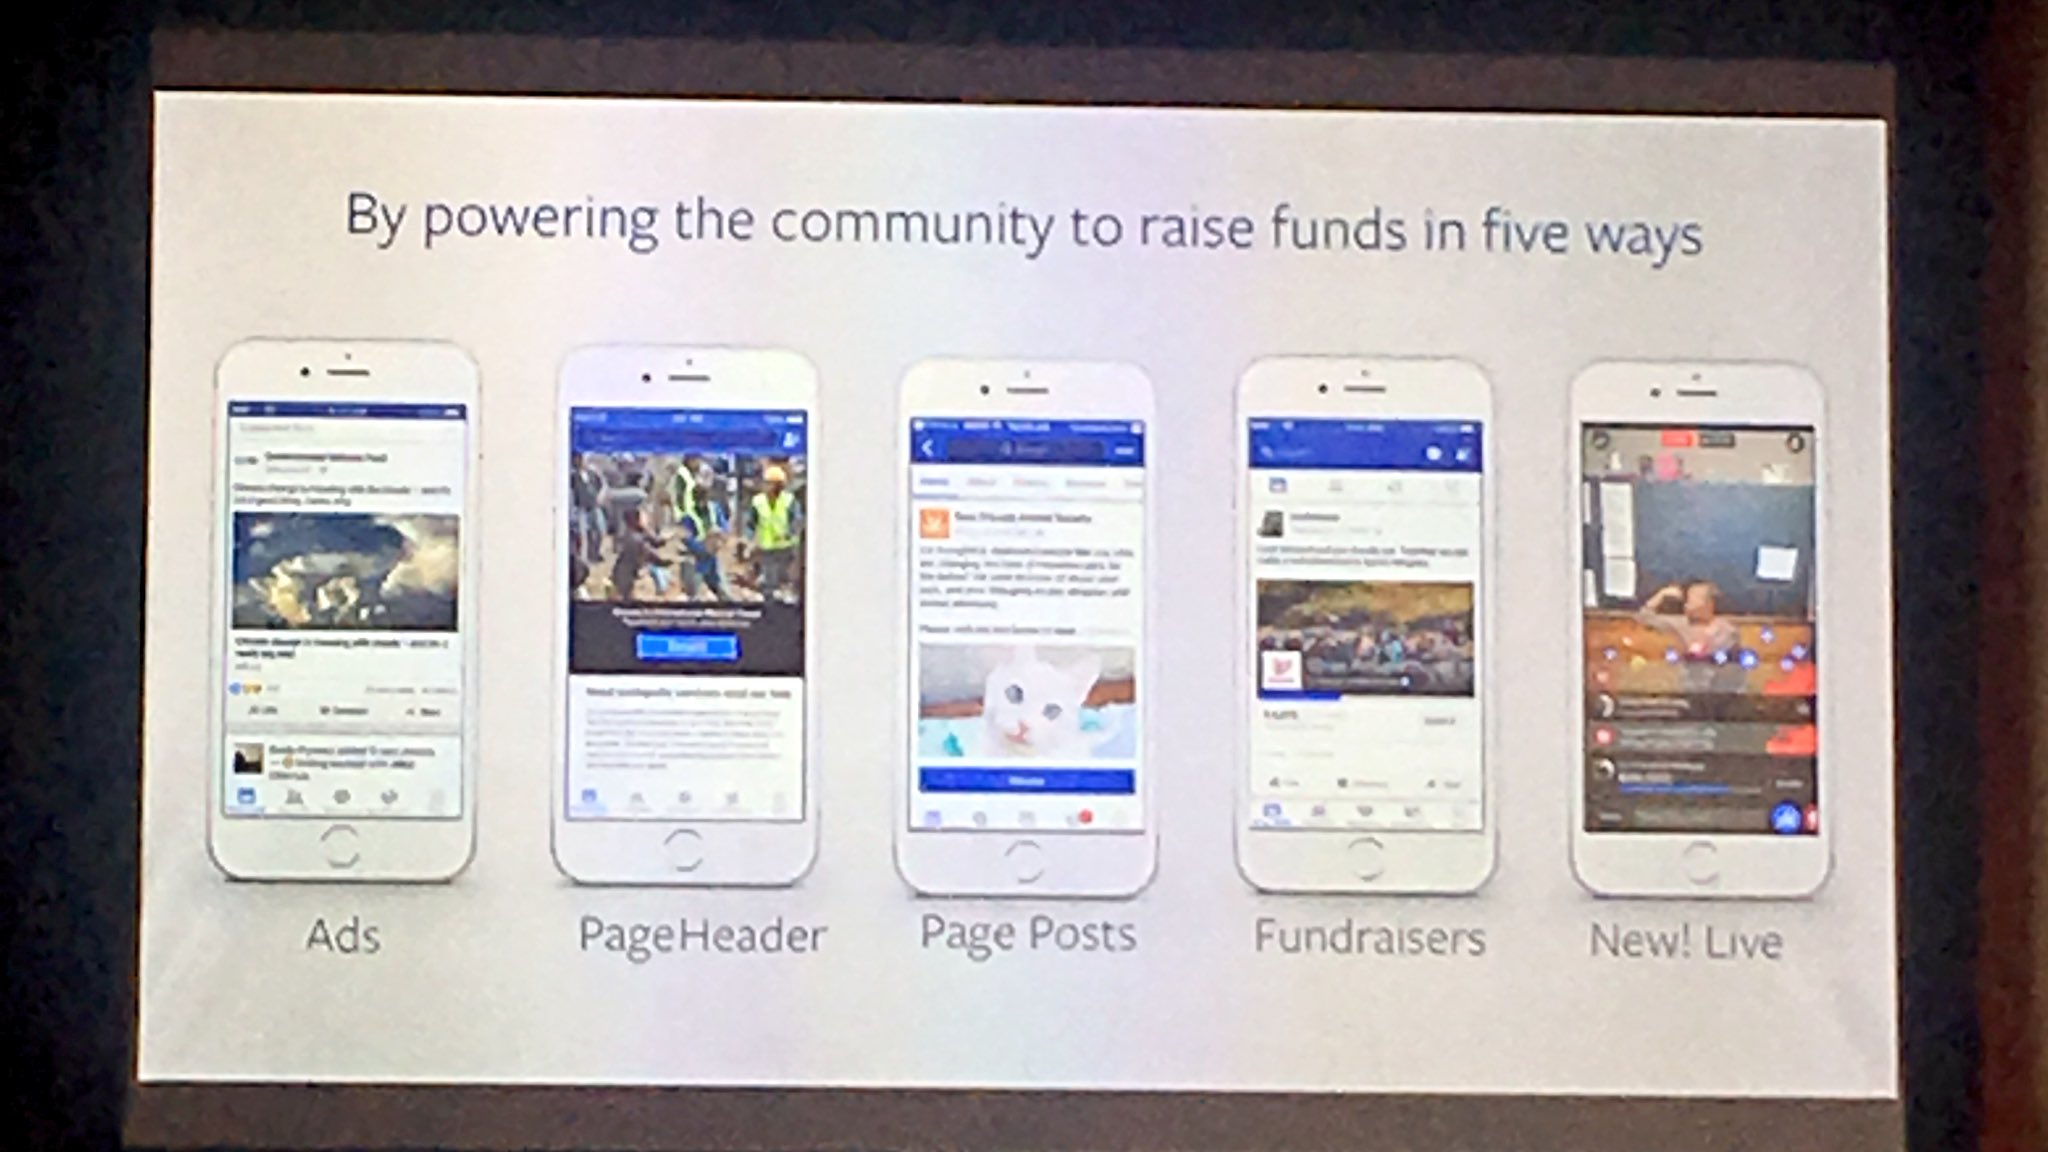 FB fundraising tools being tested in the US, including the newest = LIVE. Roll out beyond US is planned #FBsocialgood https://t.co/L72wiCwY7v